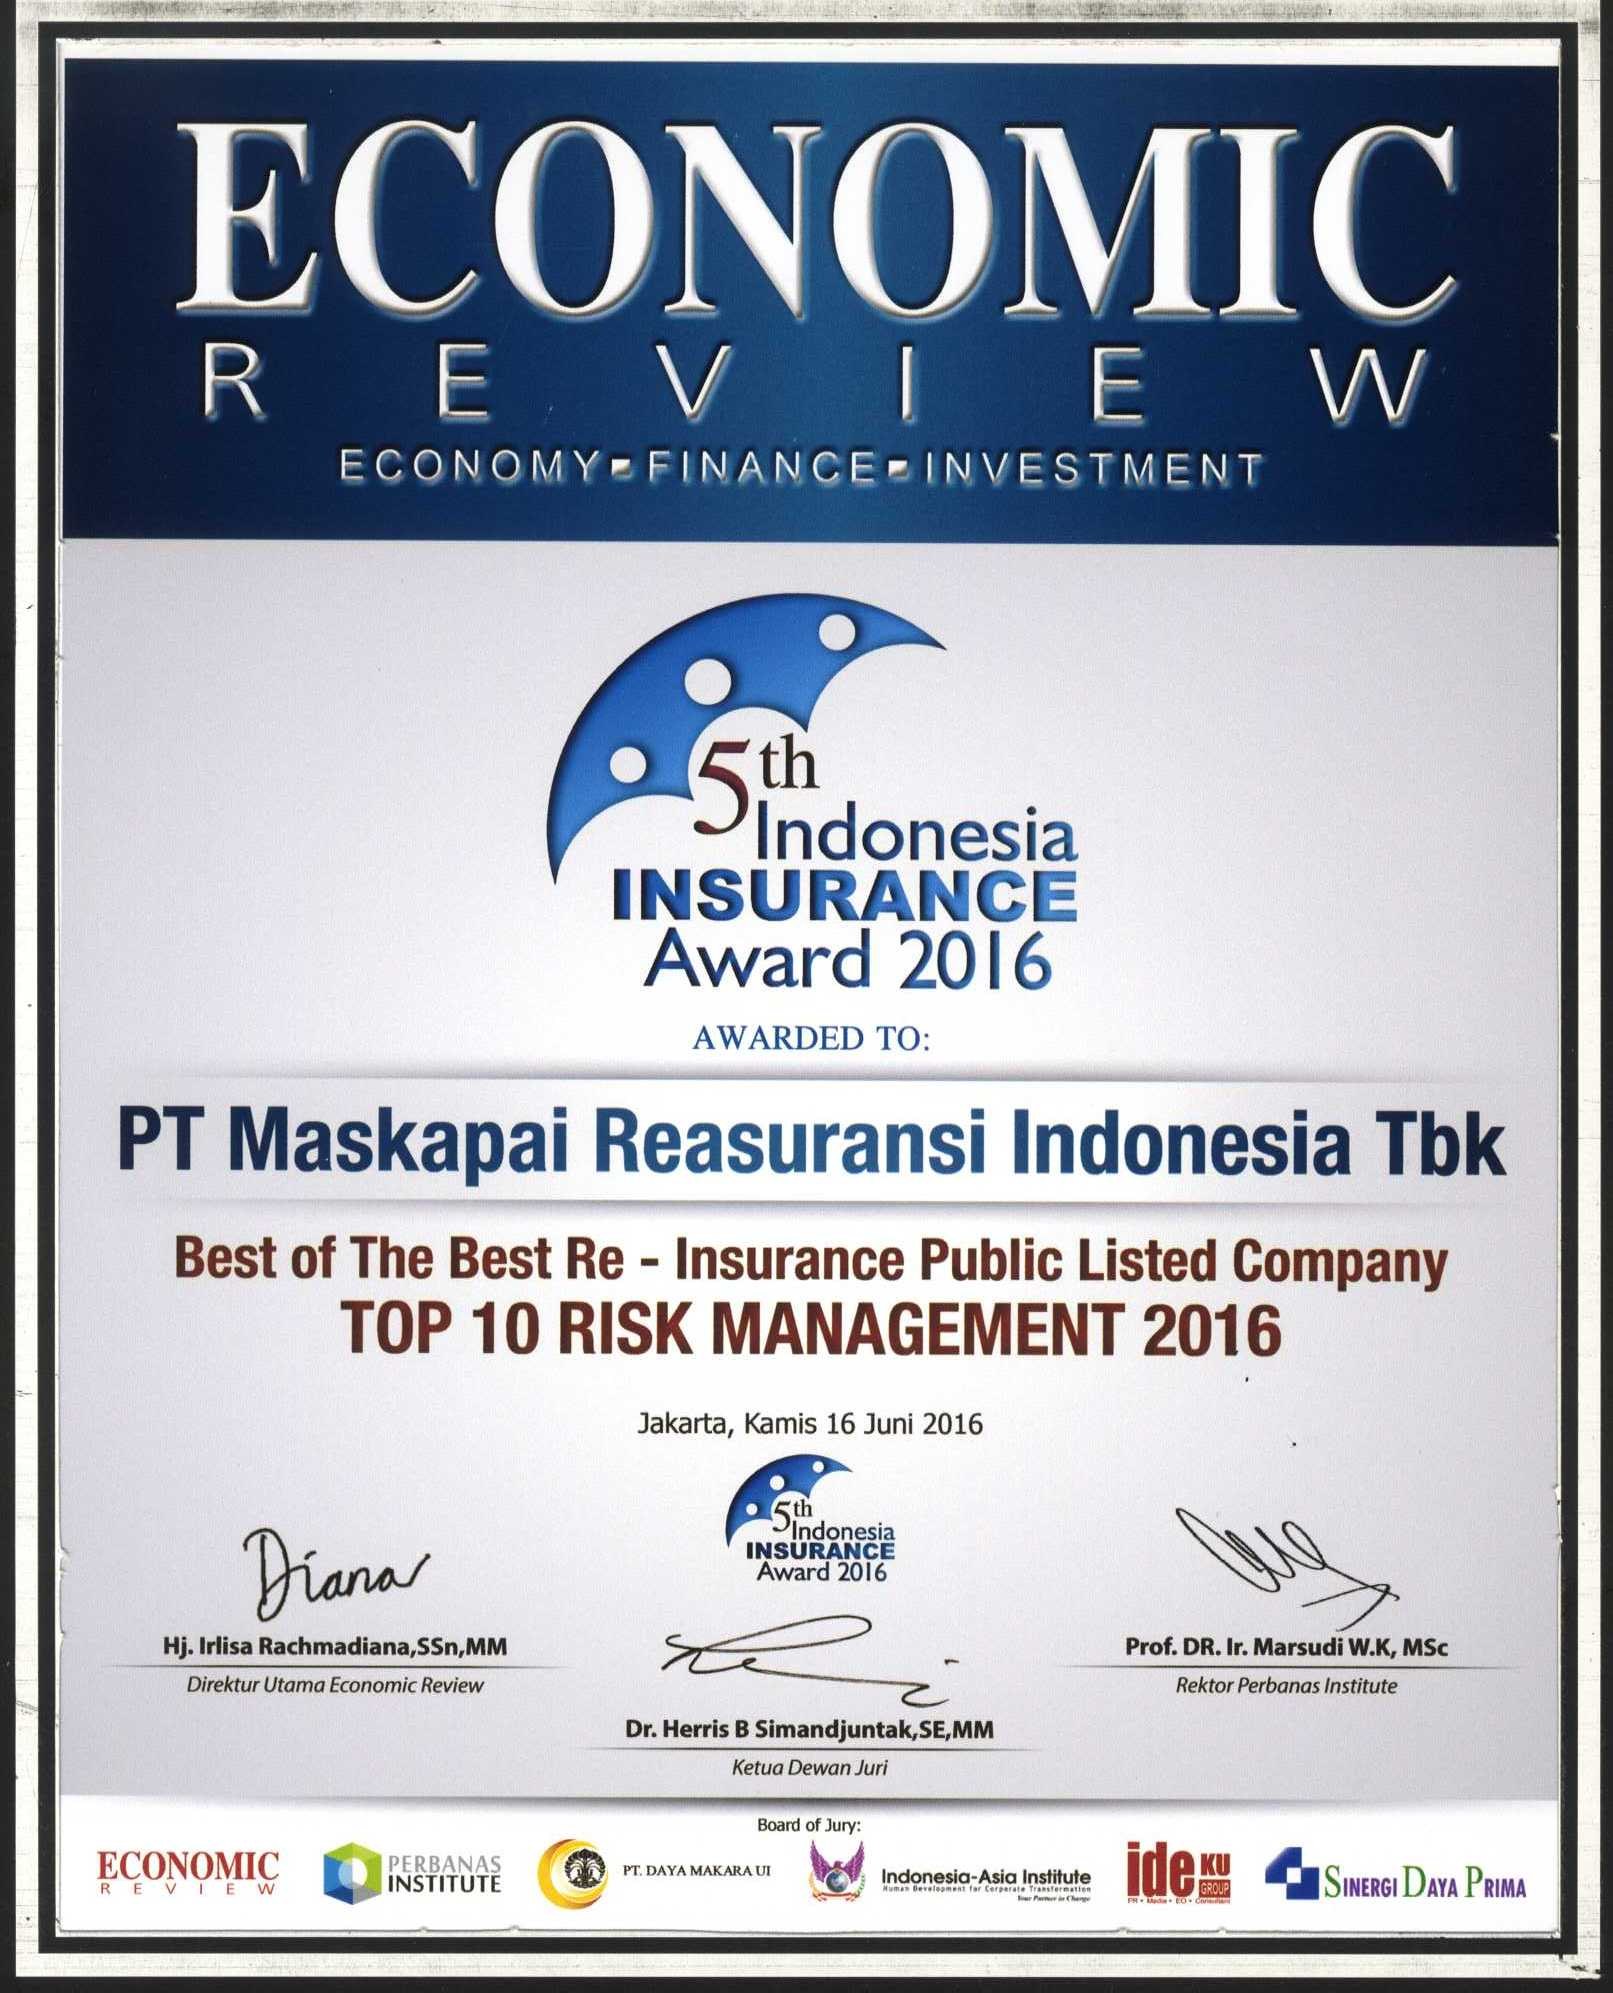 Majalah Economic Review : Top 10 Risk Management 2016 - 5th Indonesia Insurance Award 2016